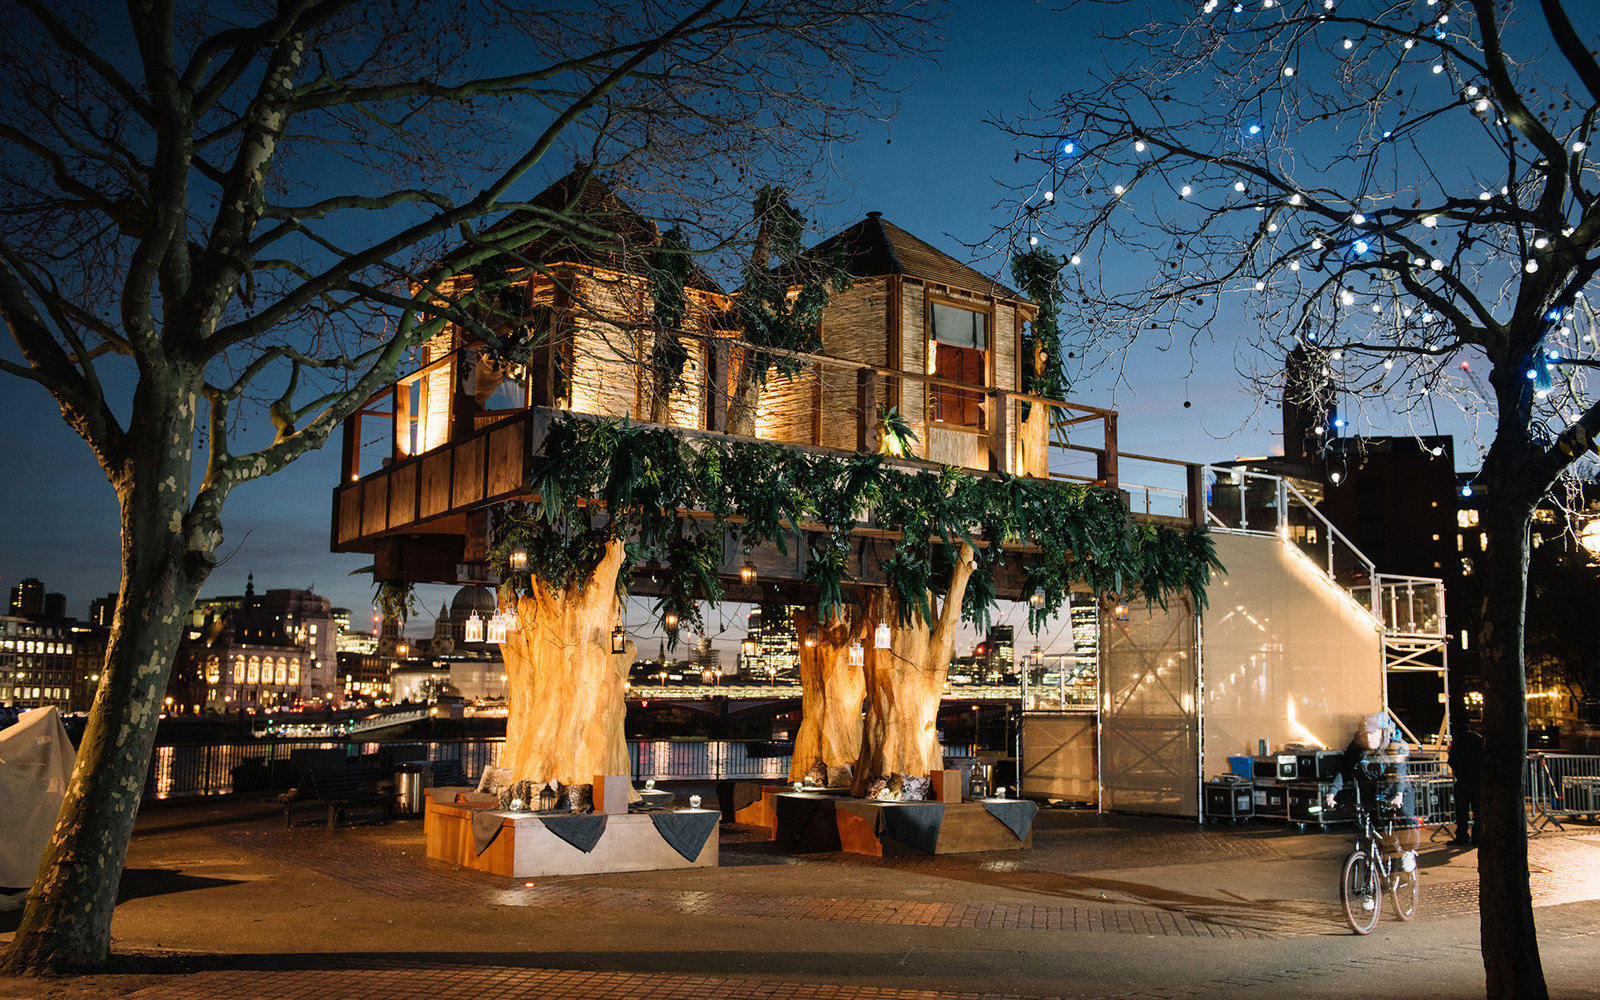 luxurious tree house build in luxury 35 foot treehouse inspired by the south african destinations from virgin holidays has luxury tree house in middle of london travel leisure